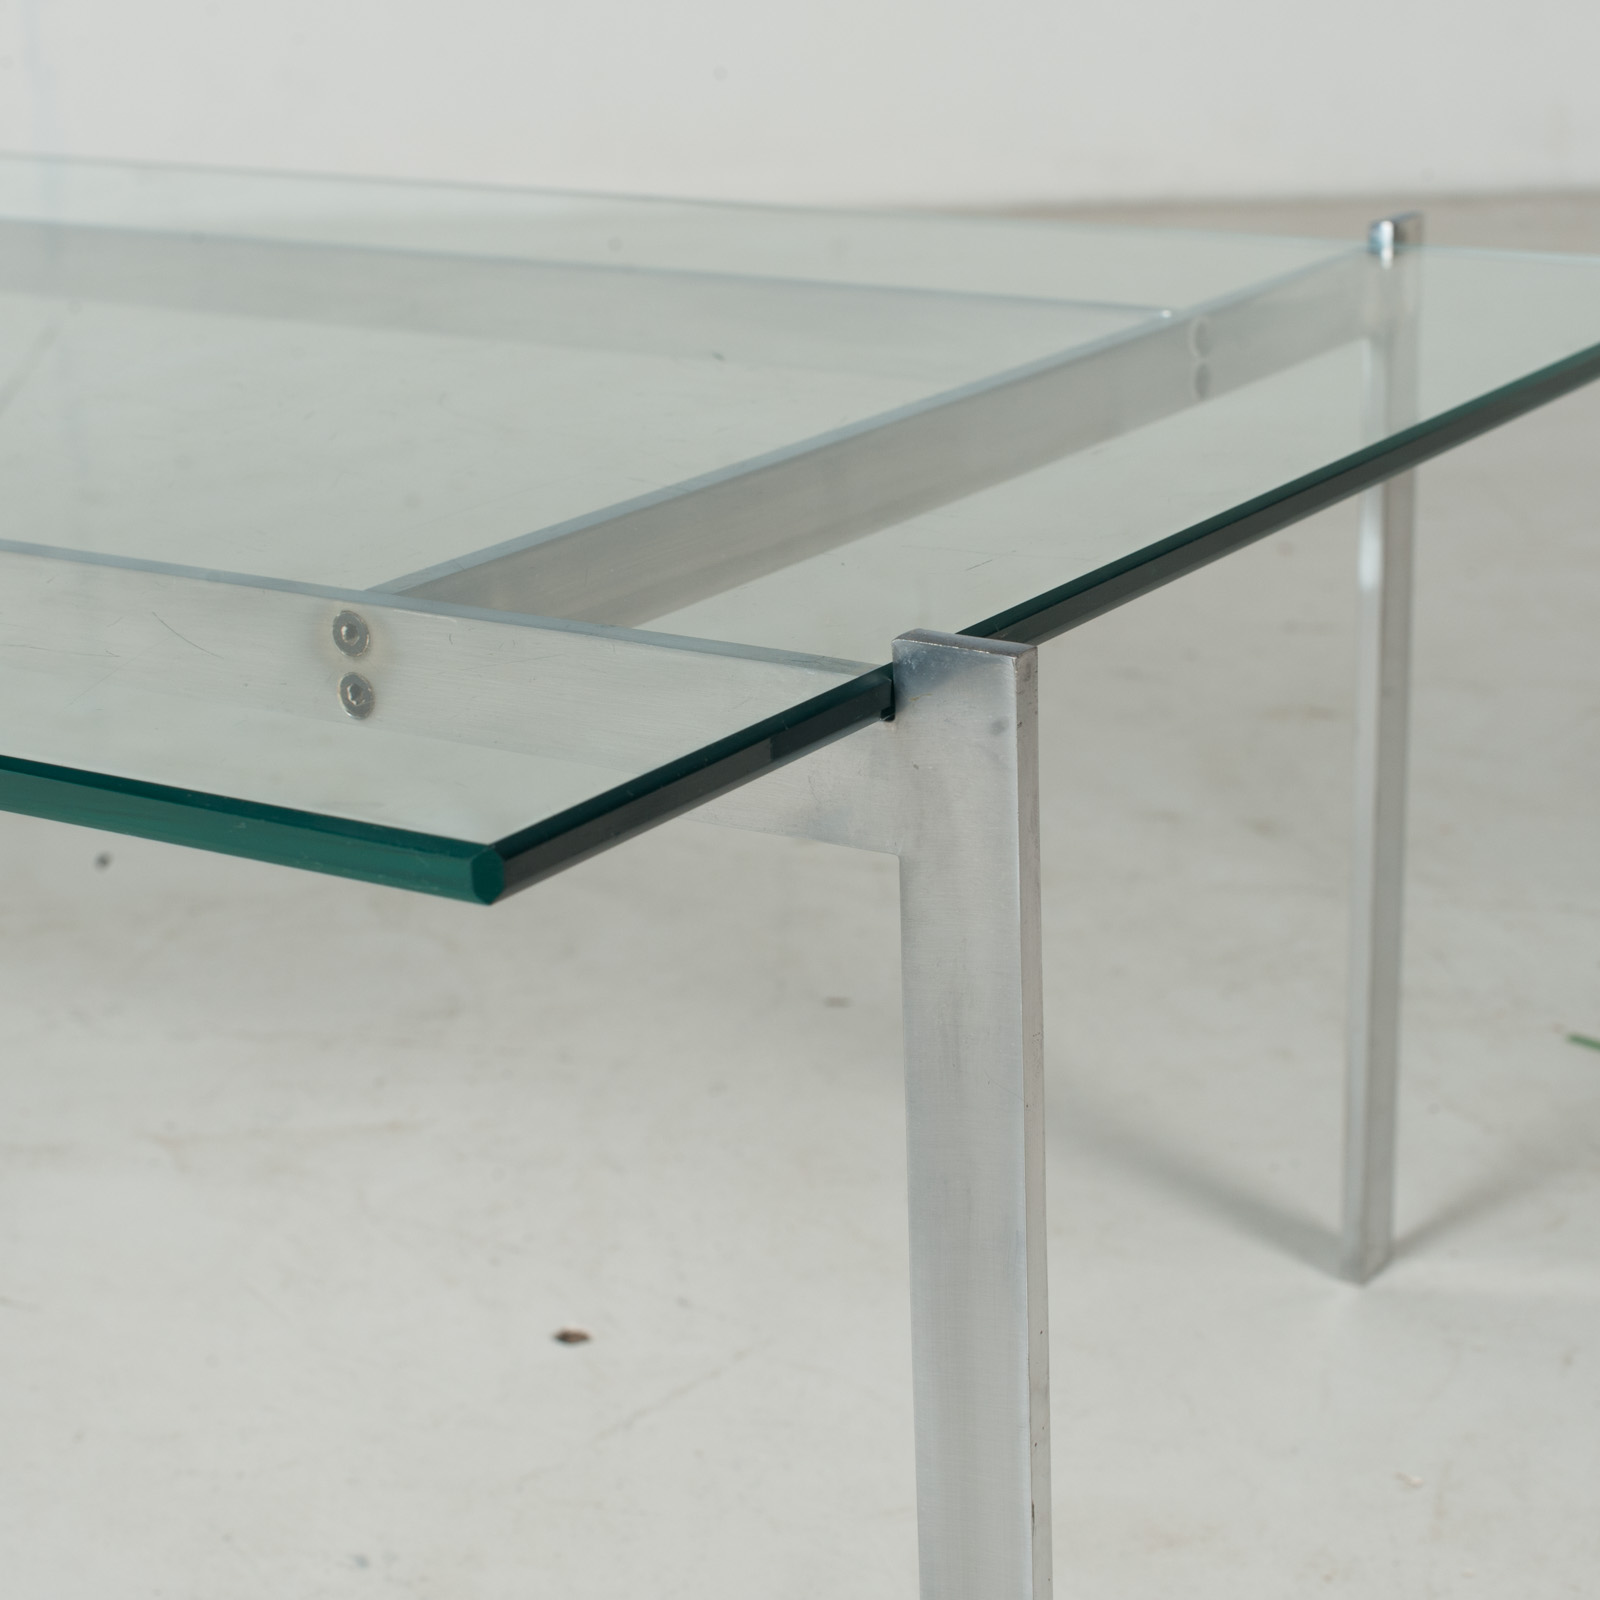 Coffee Table In The Style Of Poul Kjaerholm With Chrome And Glass, 1960s, Netherlands8